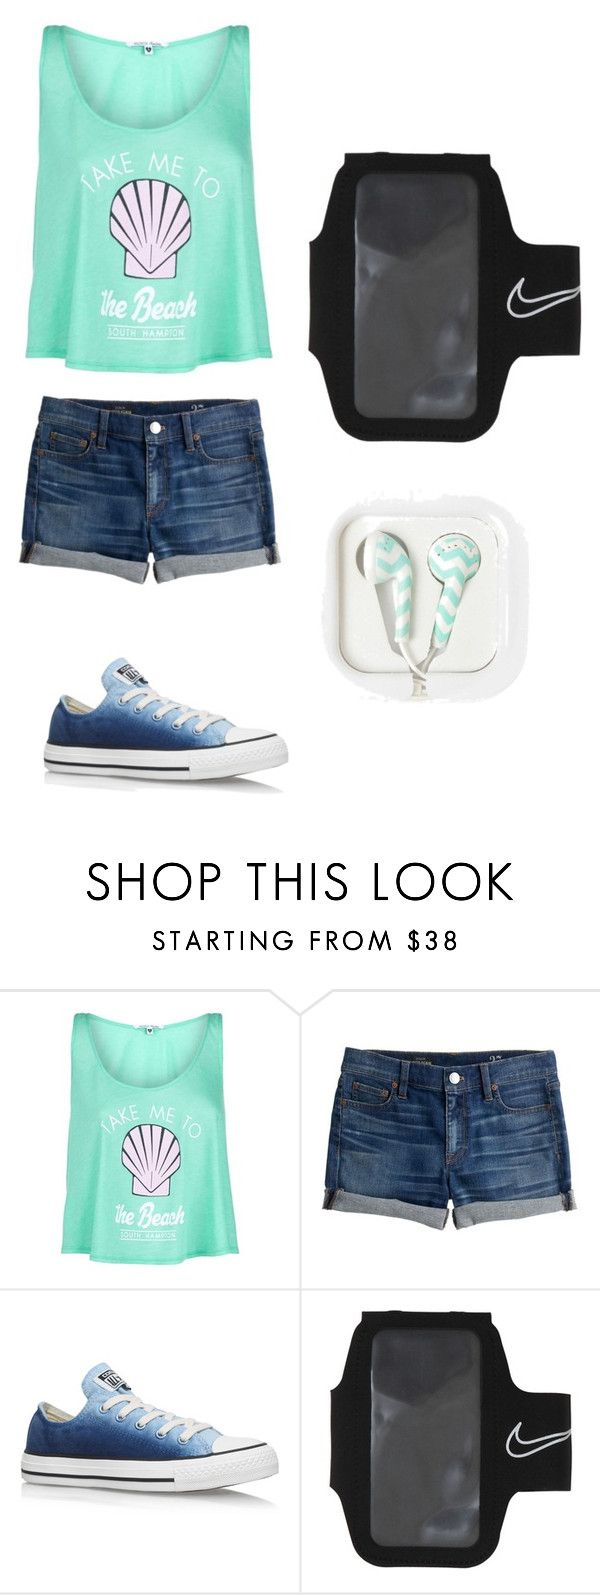 """Beach Day"" by chloejmo on Polyvore featuring Wildfox, J.Crew, Converse and NIKE"